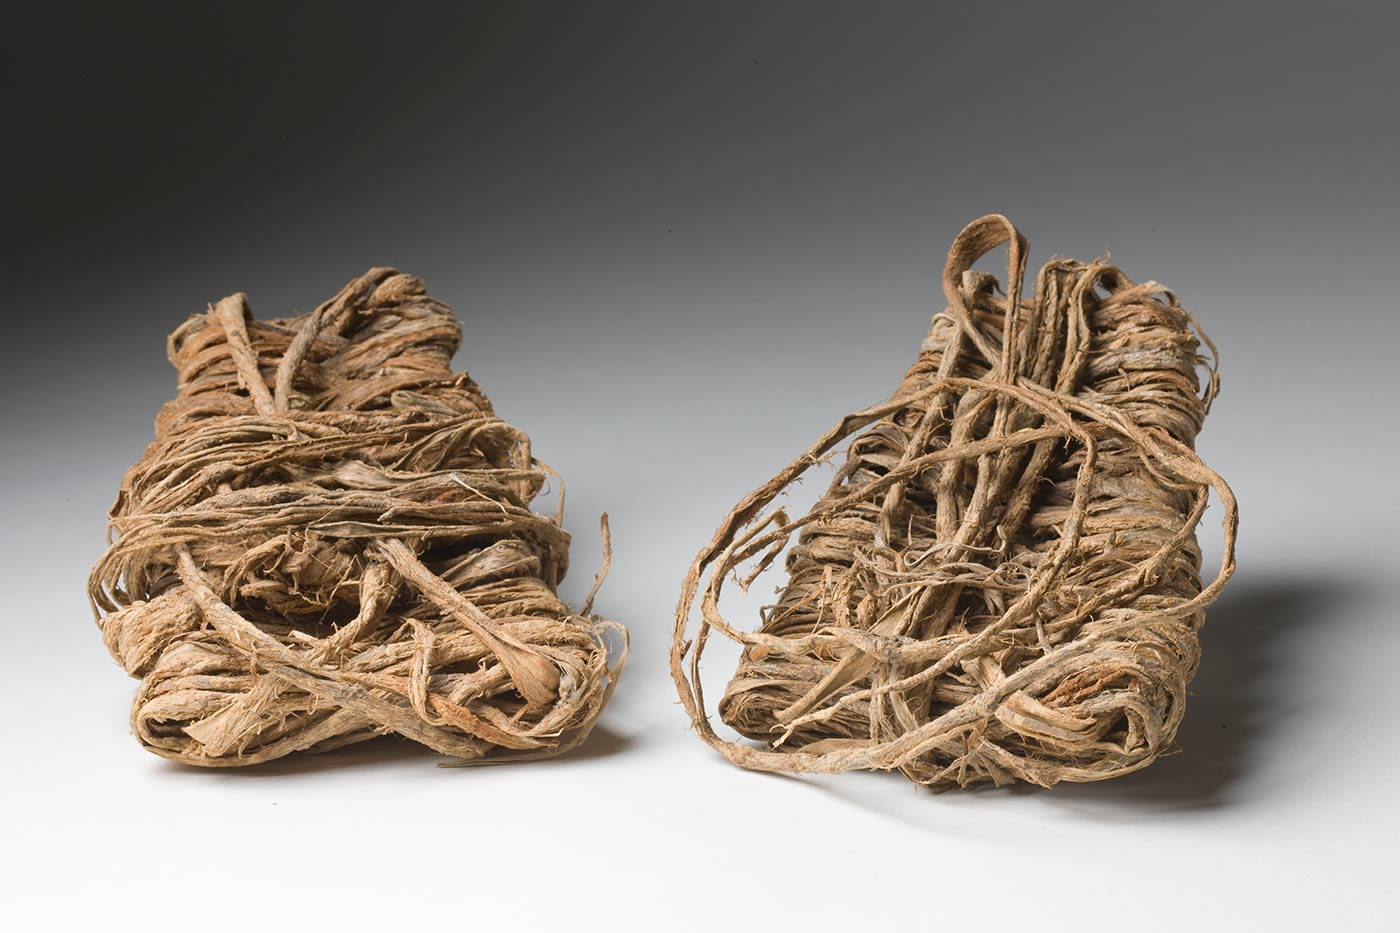 A pair of sandals made of plant fibre. They have a trapezoid shape and are made from strips of bark wrapped around and layered on top of each other. - click to view larger image